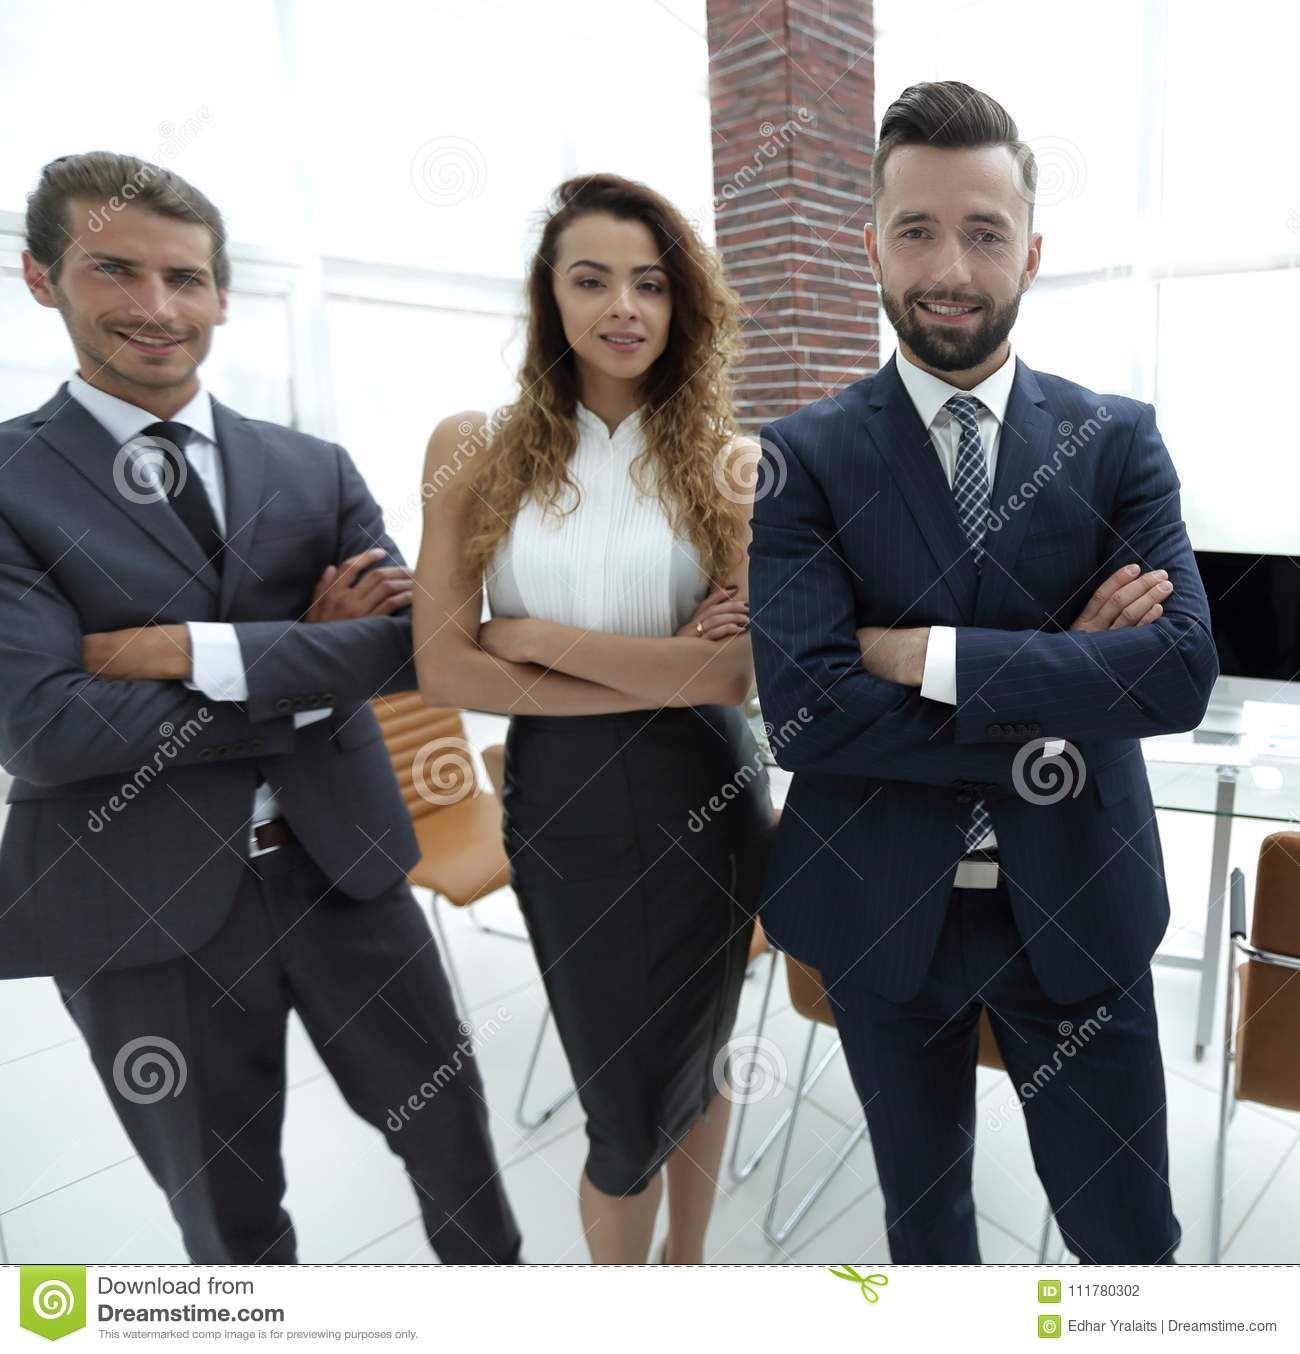 Successful business team in the background of the office.